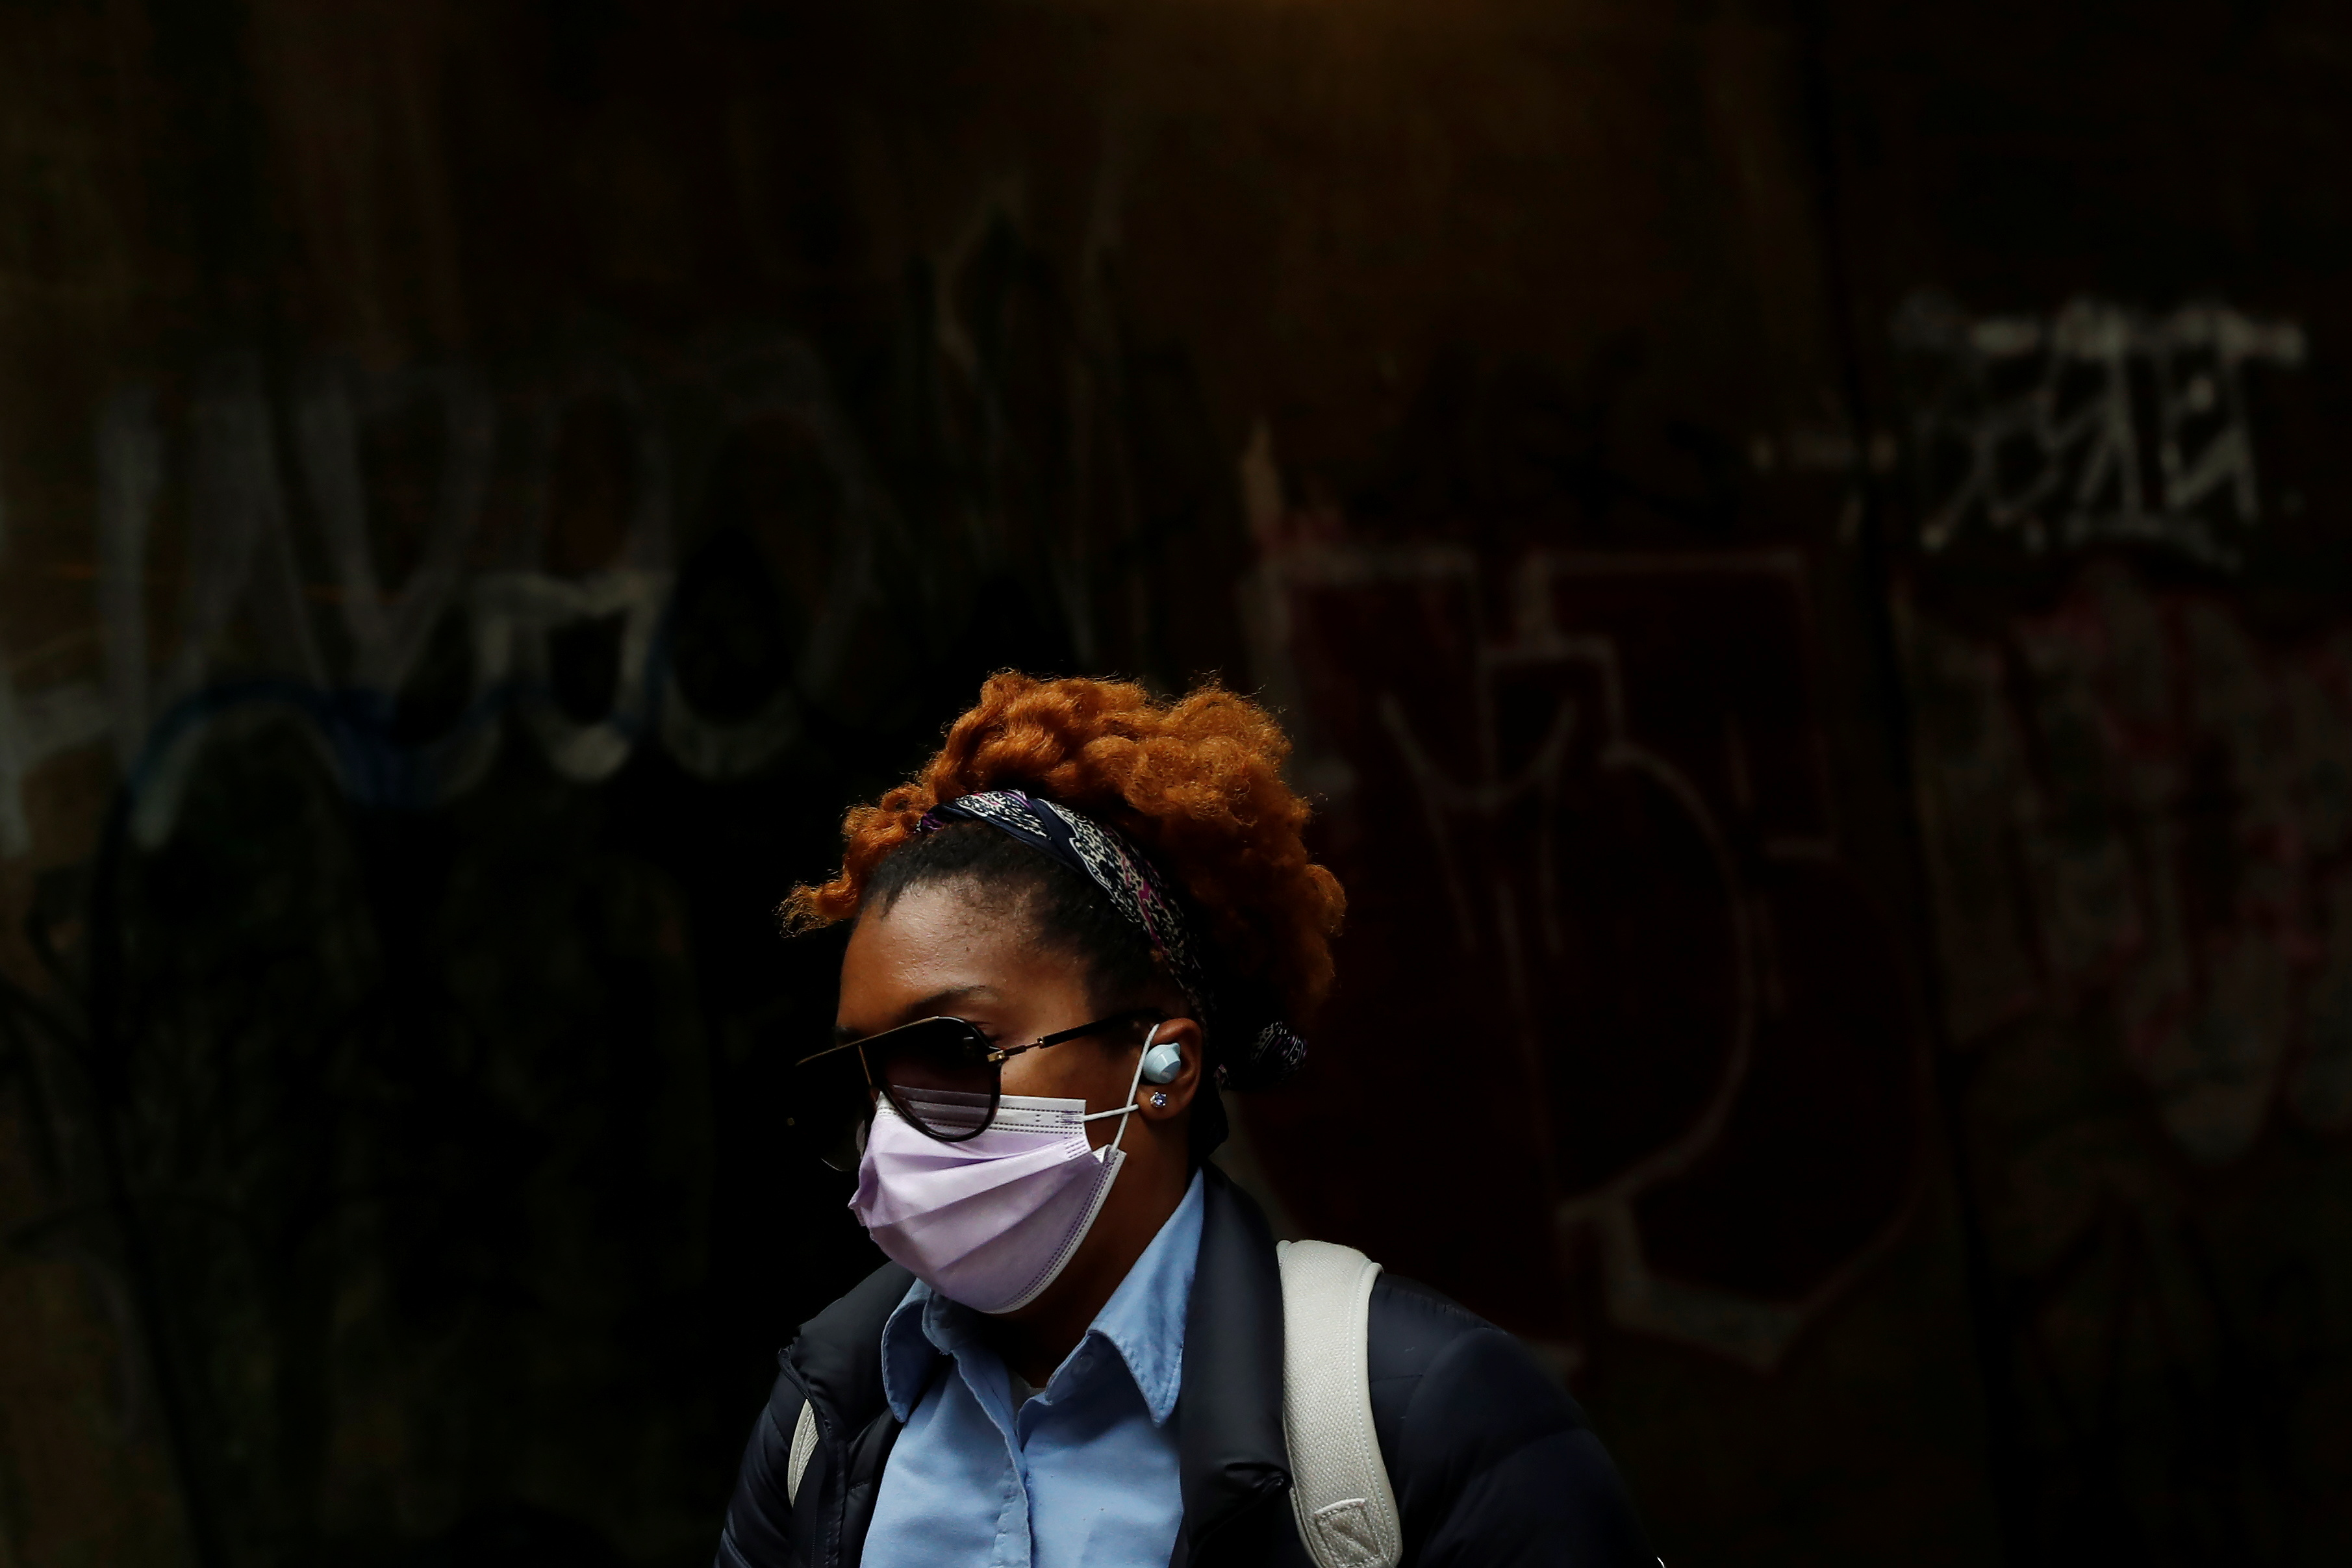 A woman wearing a protective mask walks under the subway in the Brownsville section of the Brooklyn borough of New York City, U.S., May 3, 2021. REUTERS/Shannon Stapleton